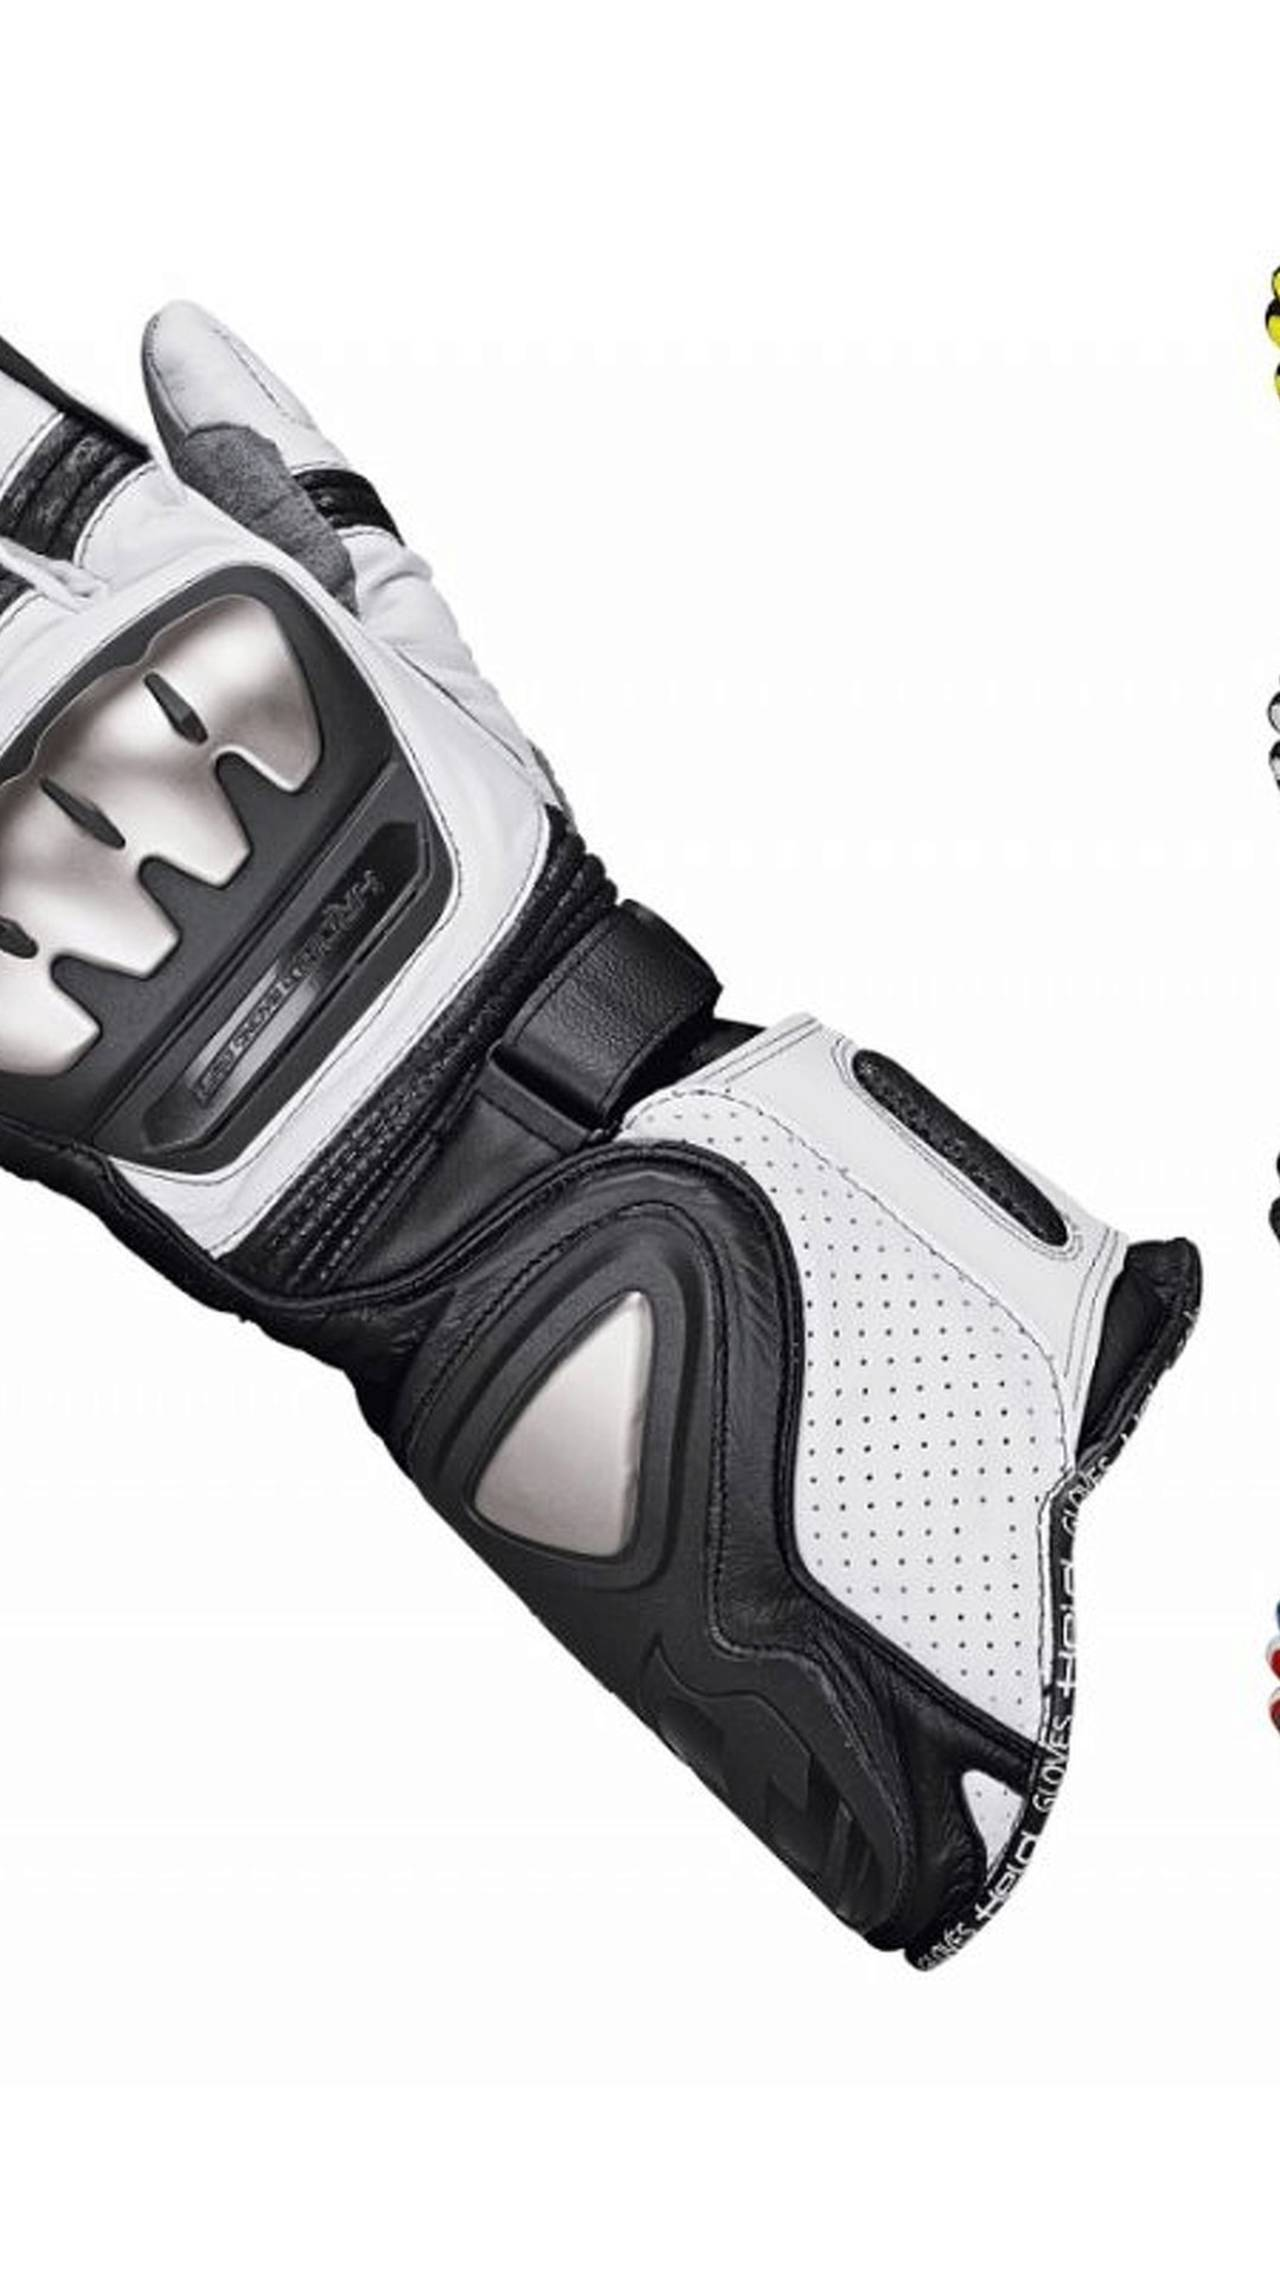 For Your Beloved Knee Dragger Hooligan - RideApart Holiday Gift Guide